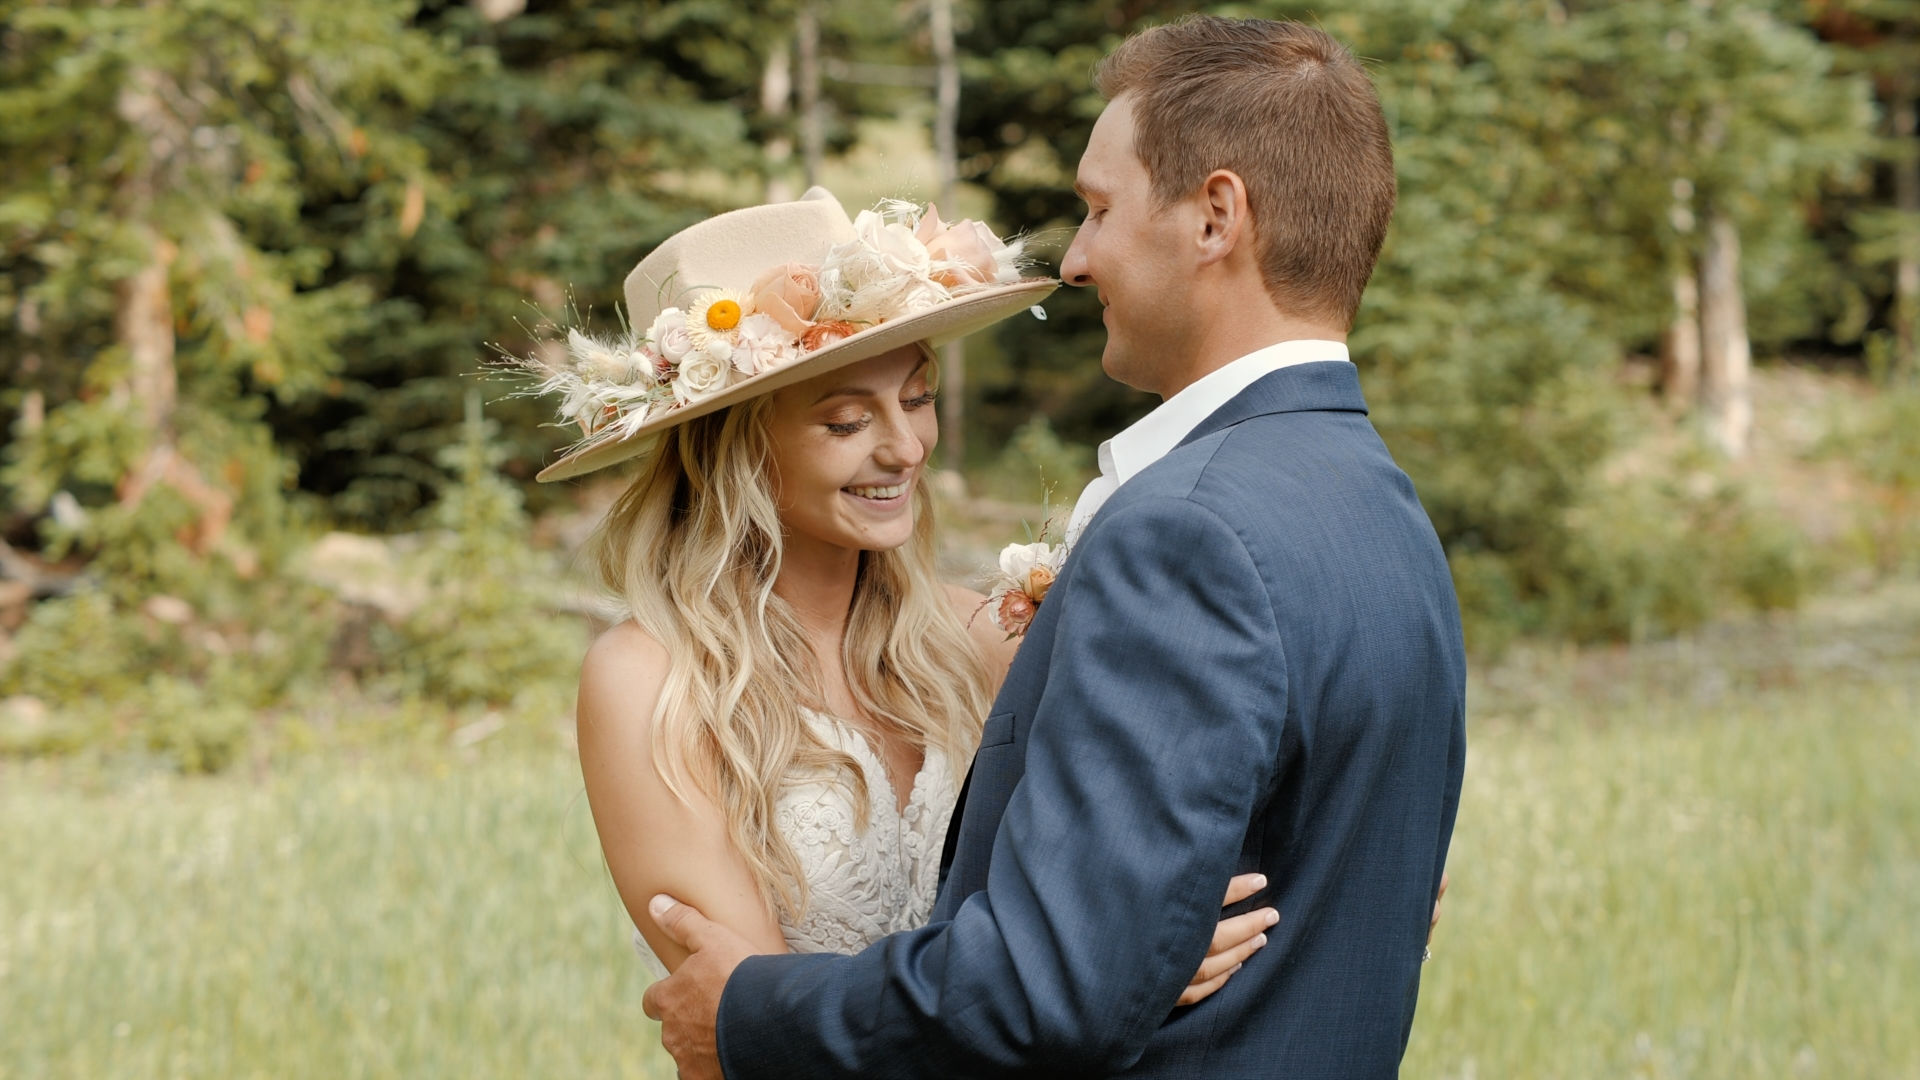 Acts of Adventure Elopement Videography Rocky Mountain Elopement